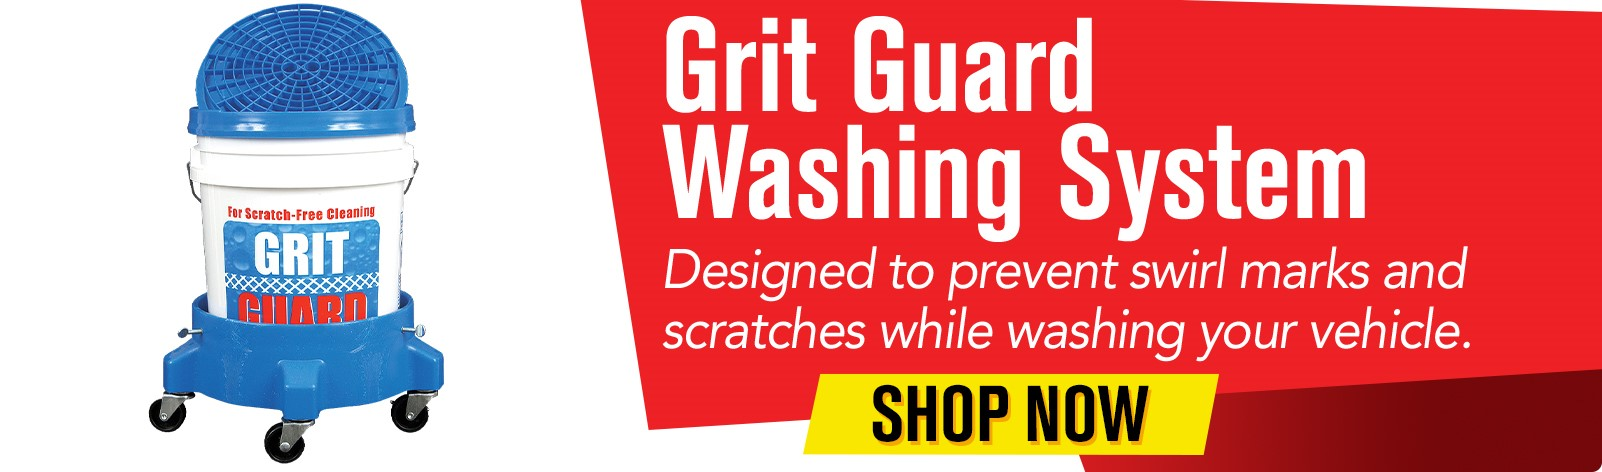 Grit Guard Washing System - Designed to prevent swirl marks and scratches while washing your vehicle.